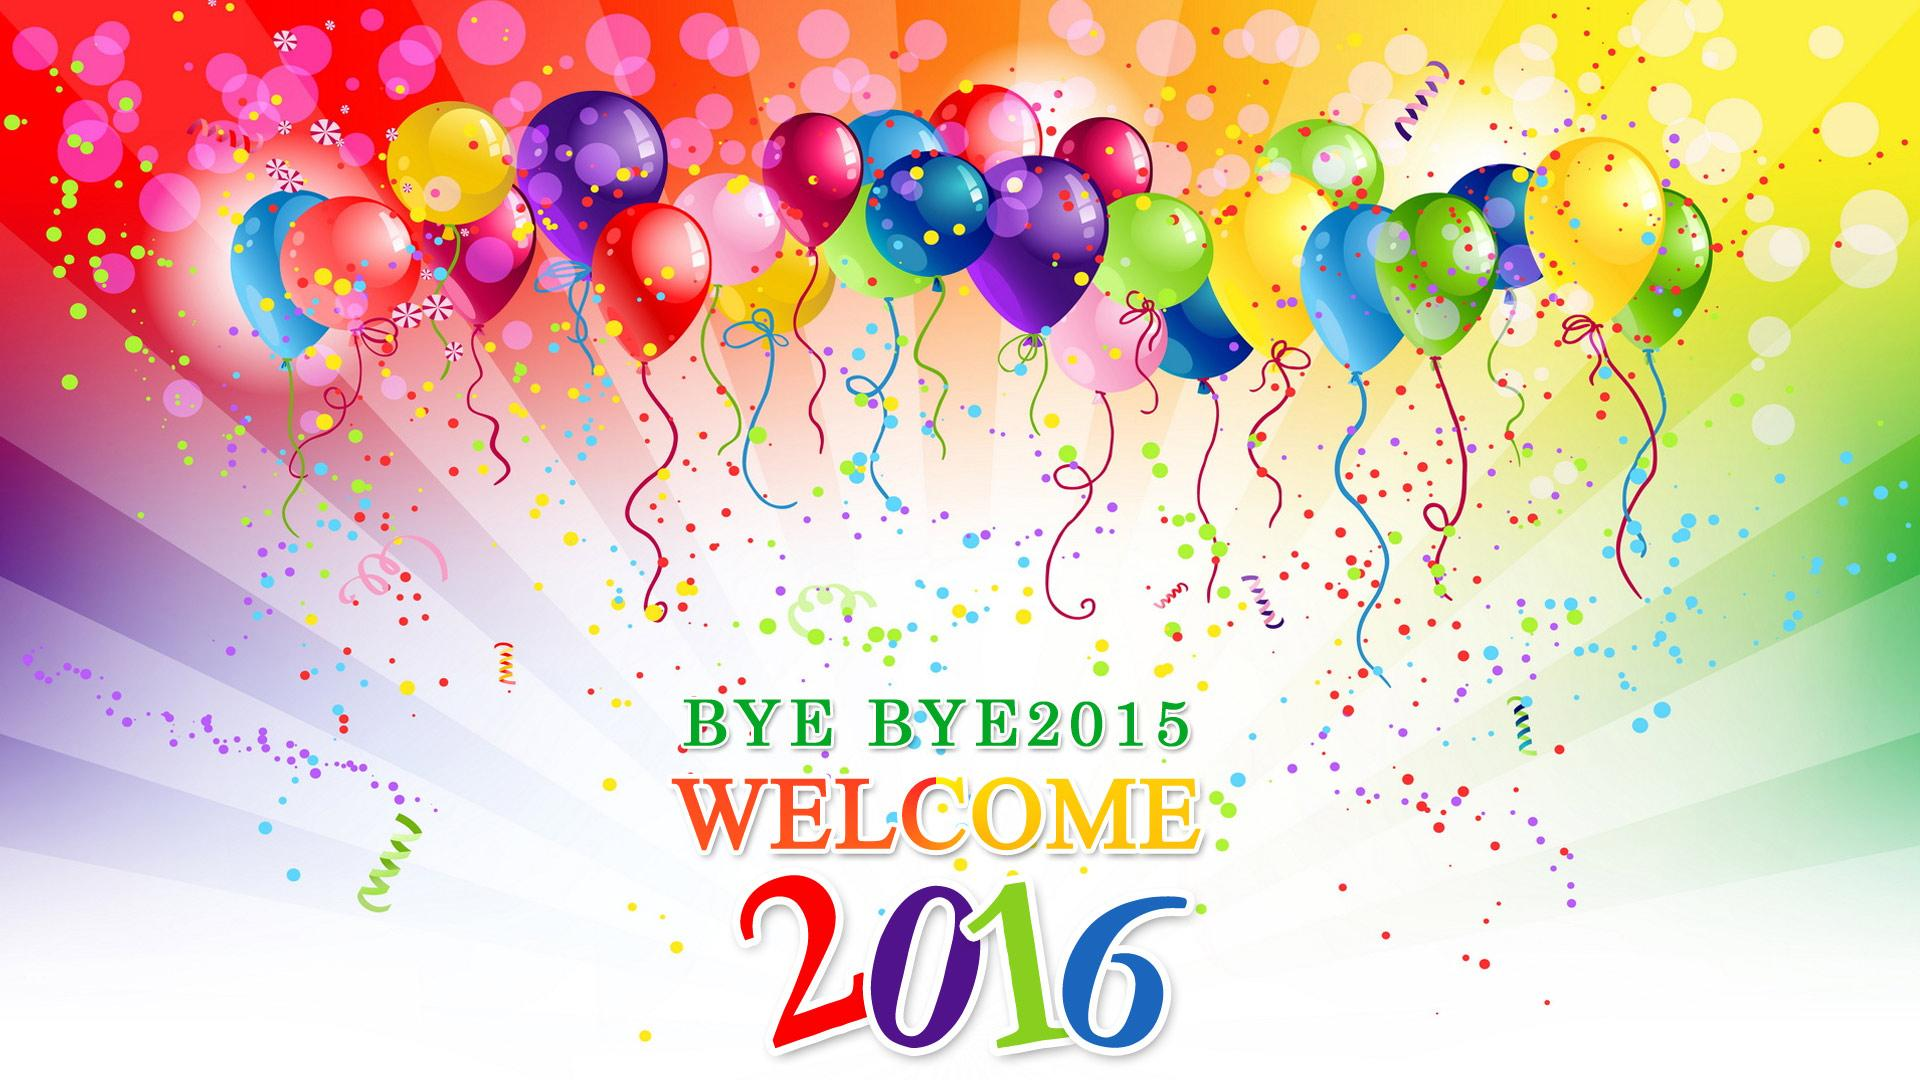 Good-Bye-2015-Welcome-2016-HD-Wallpaper-Images